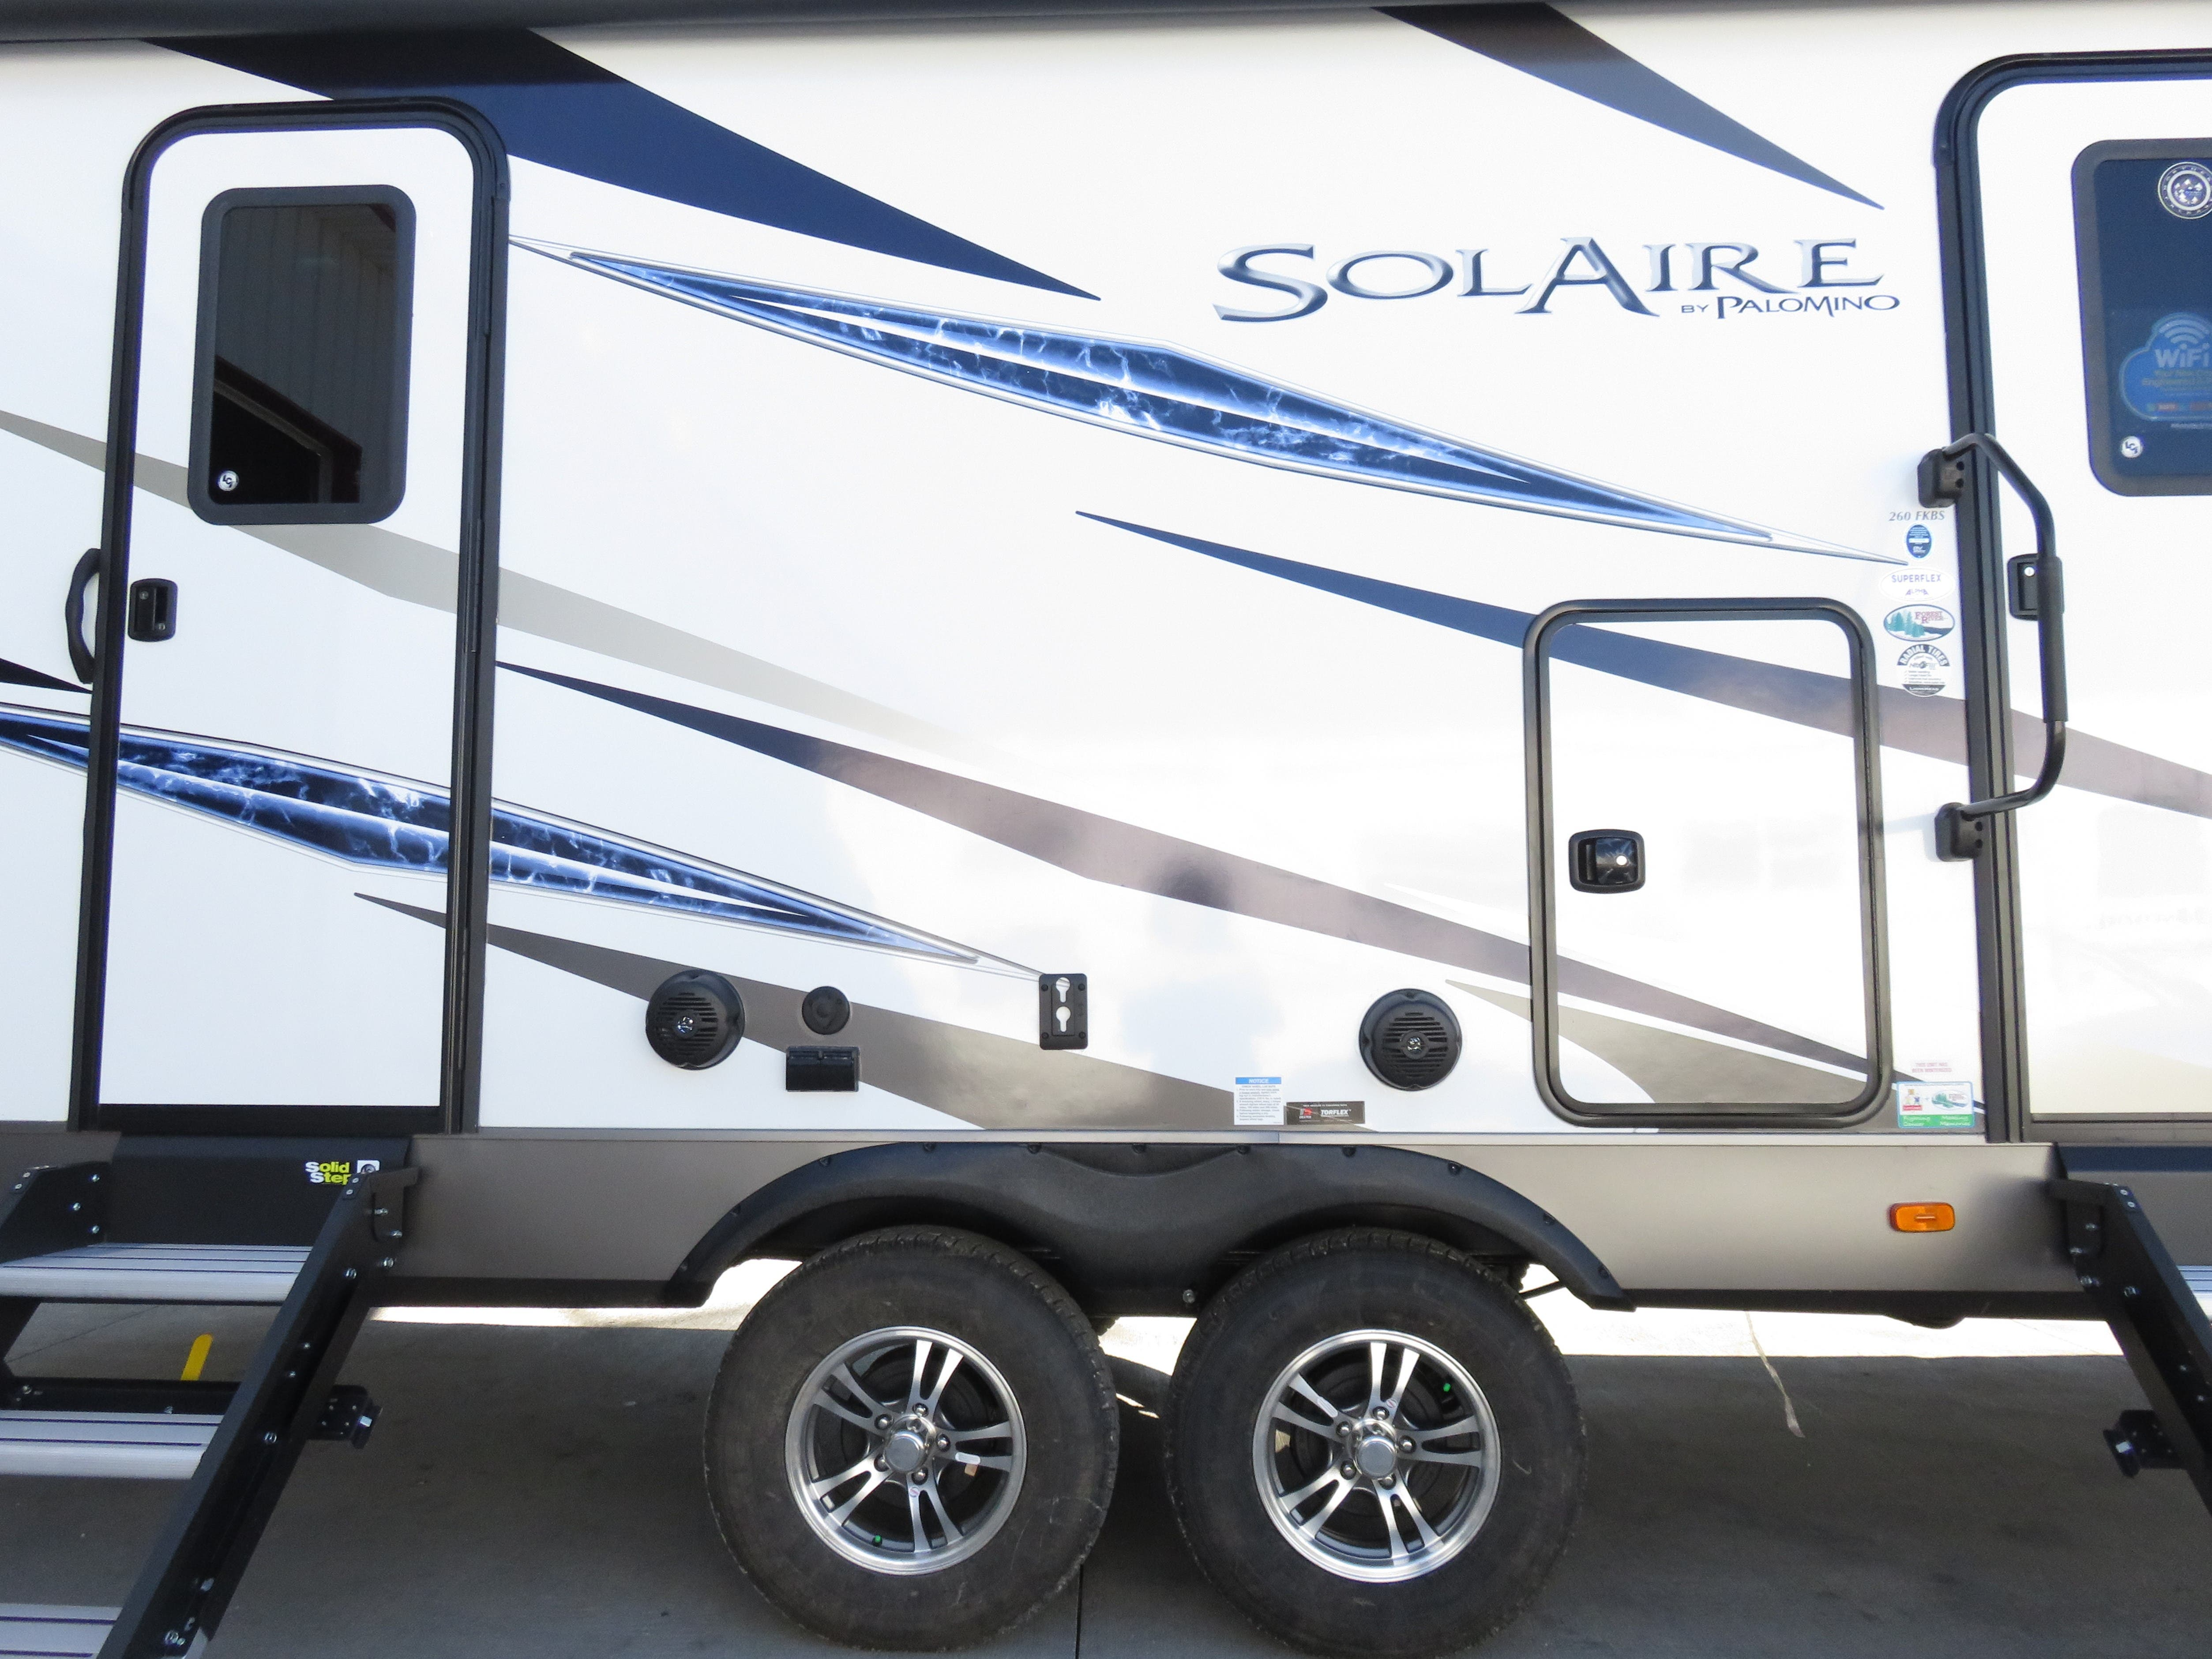 2020 Forest River Palomino Solaire Ultra Lite 260FKBS Thumbnail